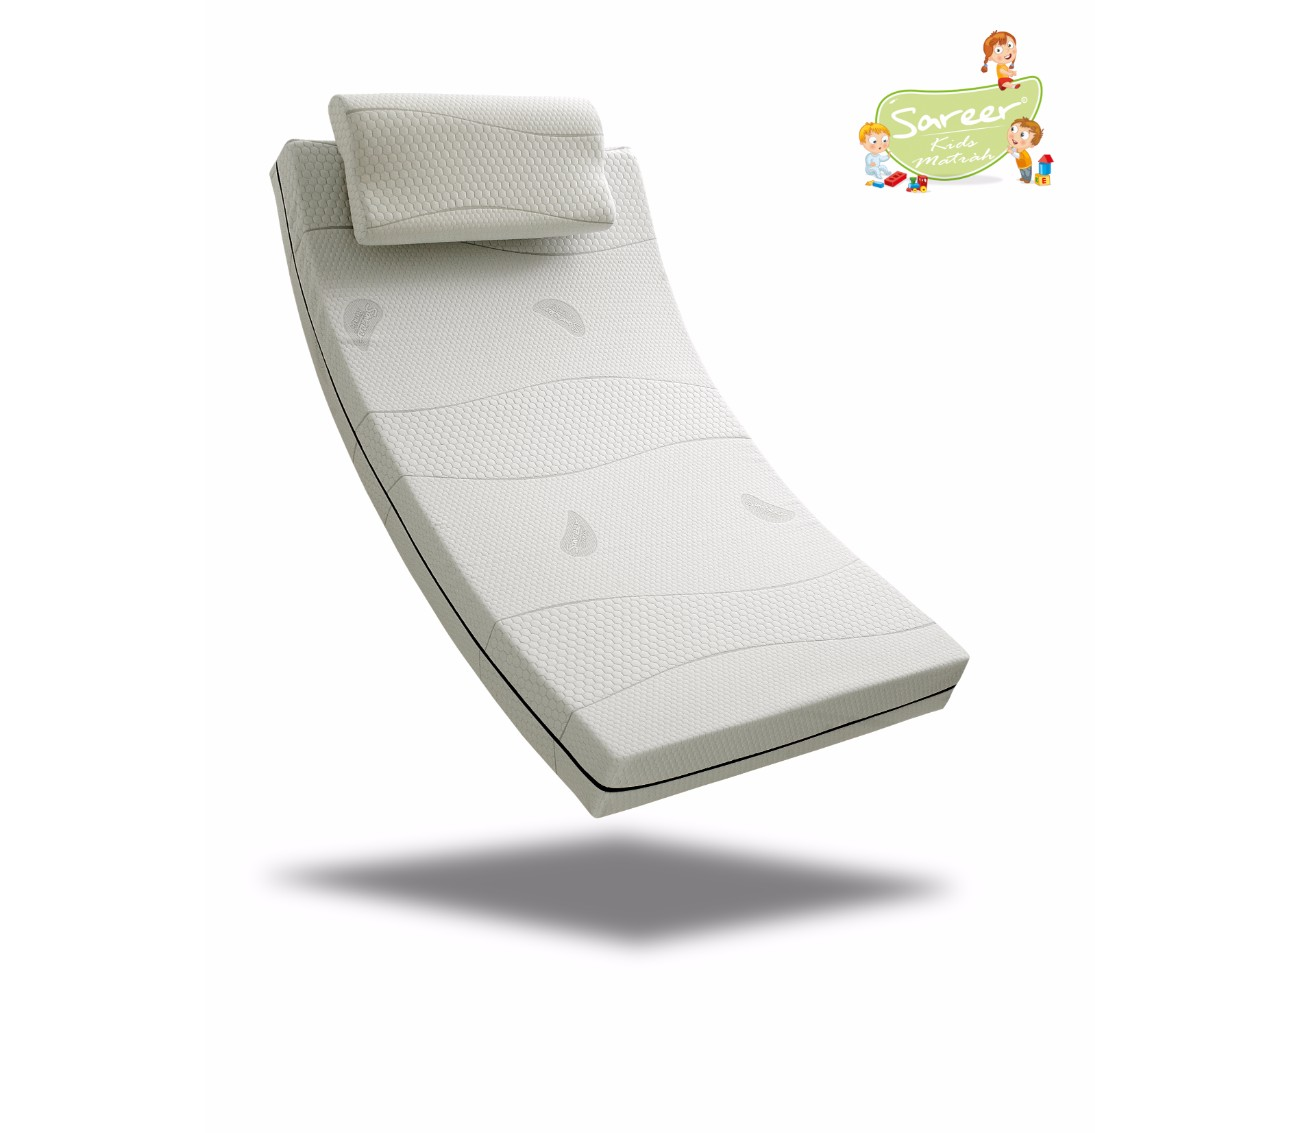 thumb_Matrah_Kids_Memory_Foam_Matrah_2